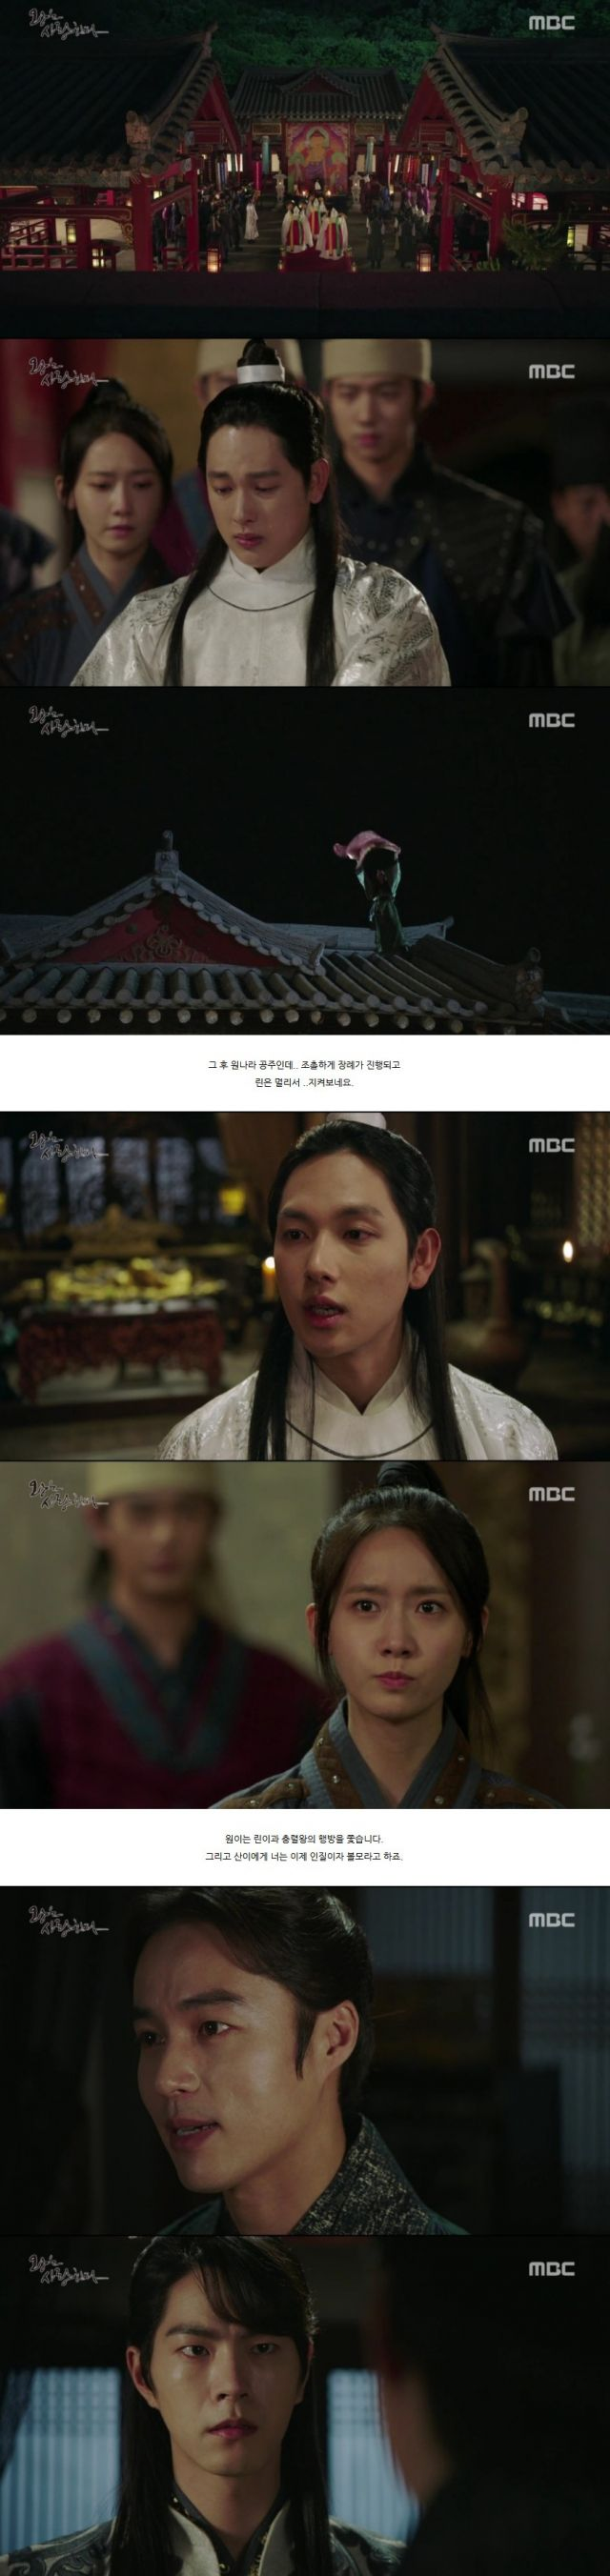 [Spoiler] Added episodes 35 and 36 captures for the Korean drama 'The King Loves'